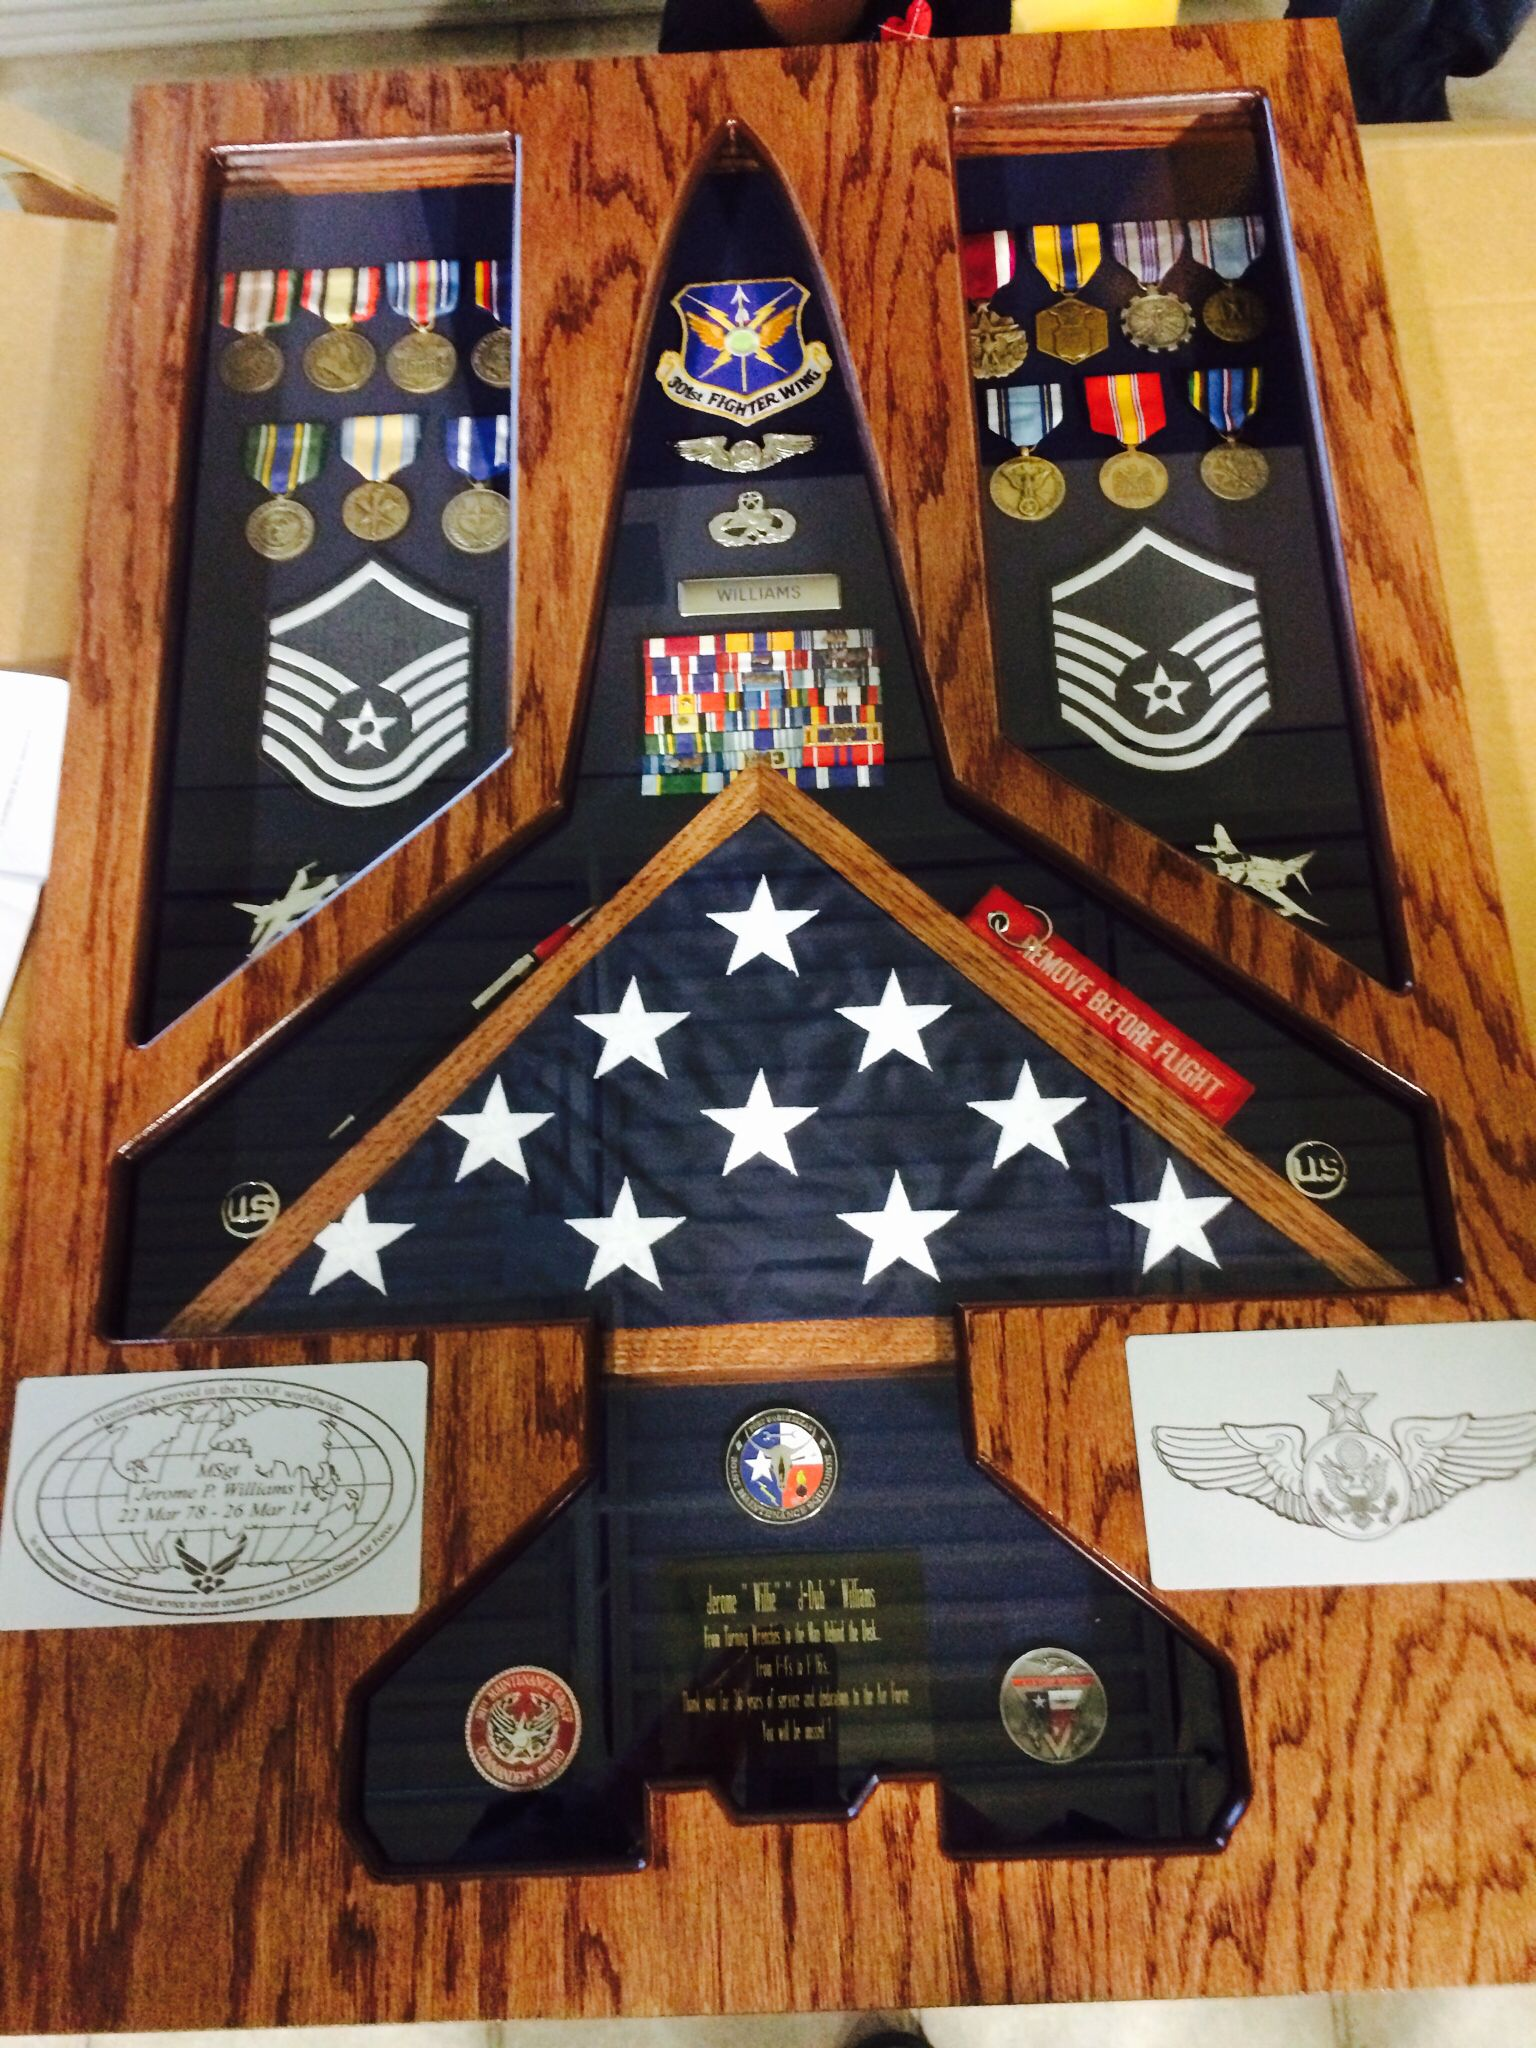 Shadow Box for Retirement Would be cool if I could find a